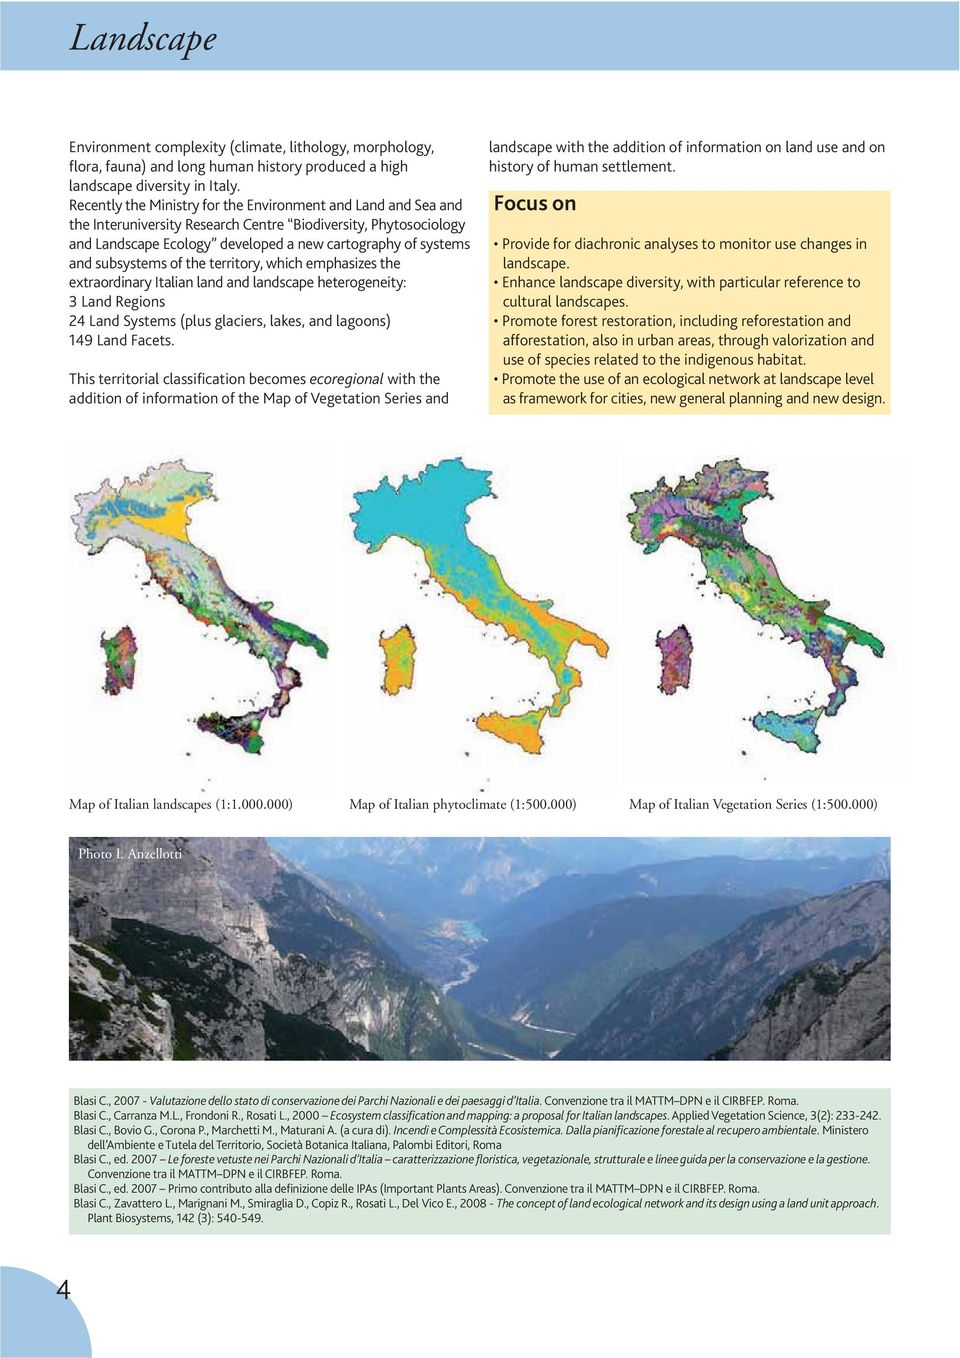 subsystems of the territory, which emphasizes the extraordinary Italian land and landscape heterogeneity: 3 Land Regions 24 Land Systems (plus glaciers, lakes, and lagoons) 149 Land Facets.